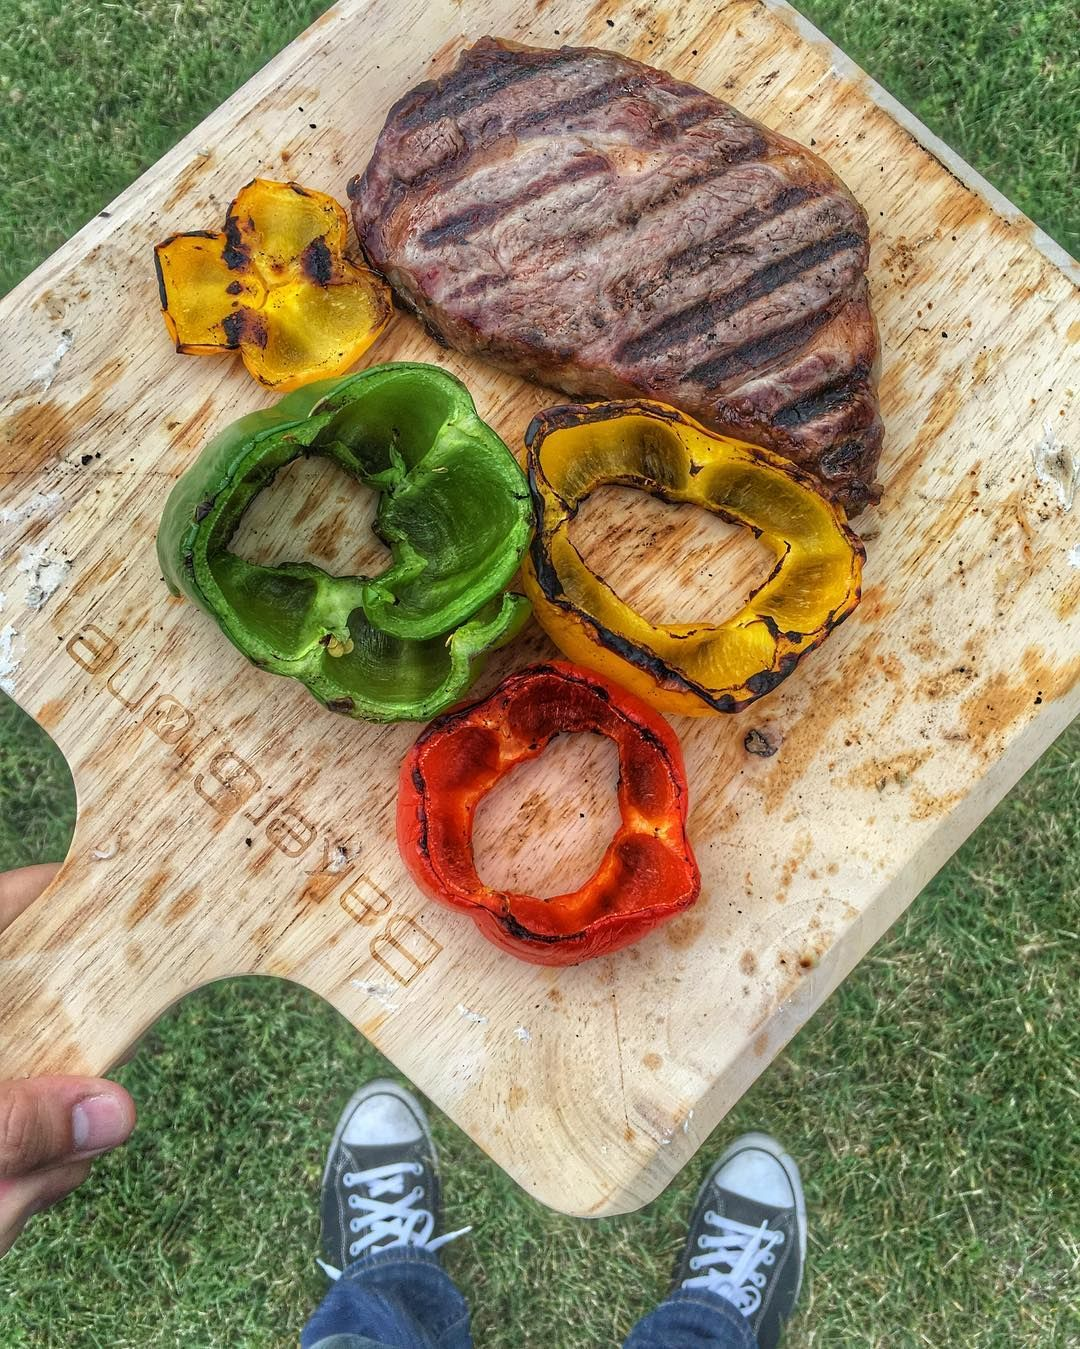 Pretty straight forward #Paleo dinner tonight.  @5280meat New York Strip Steak and Grilled Bell Peppers.